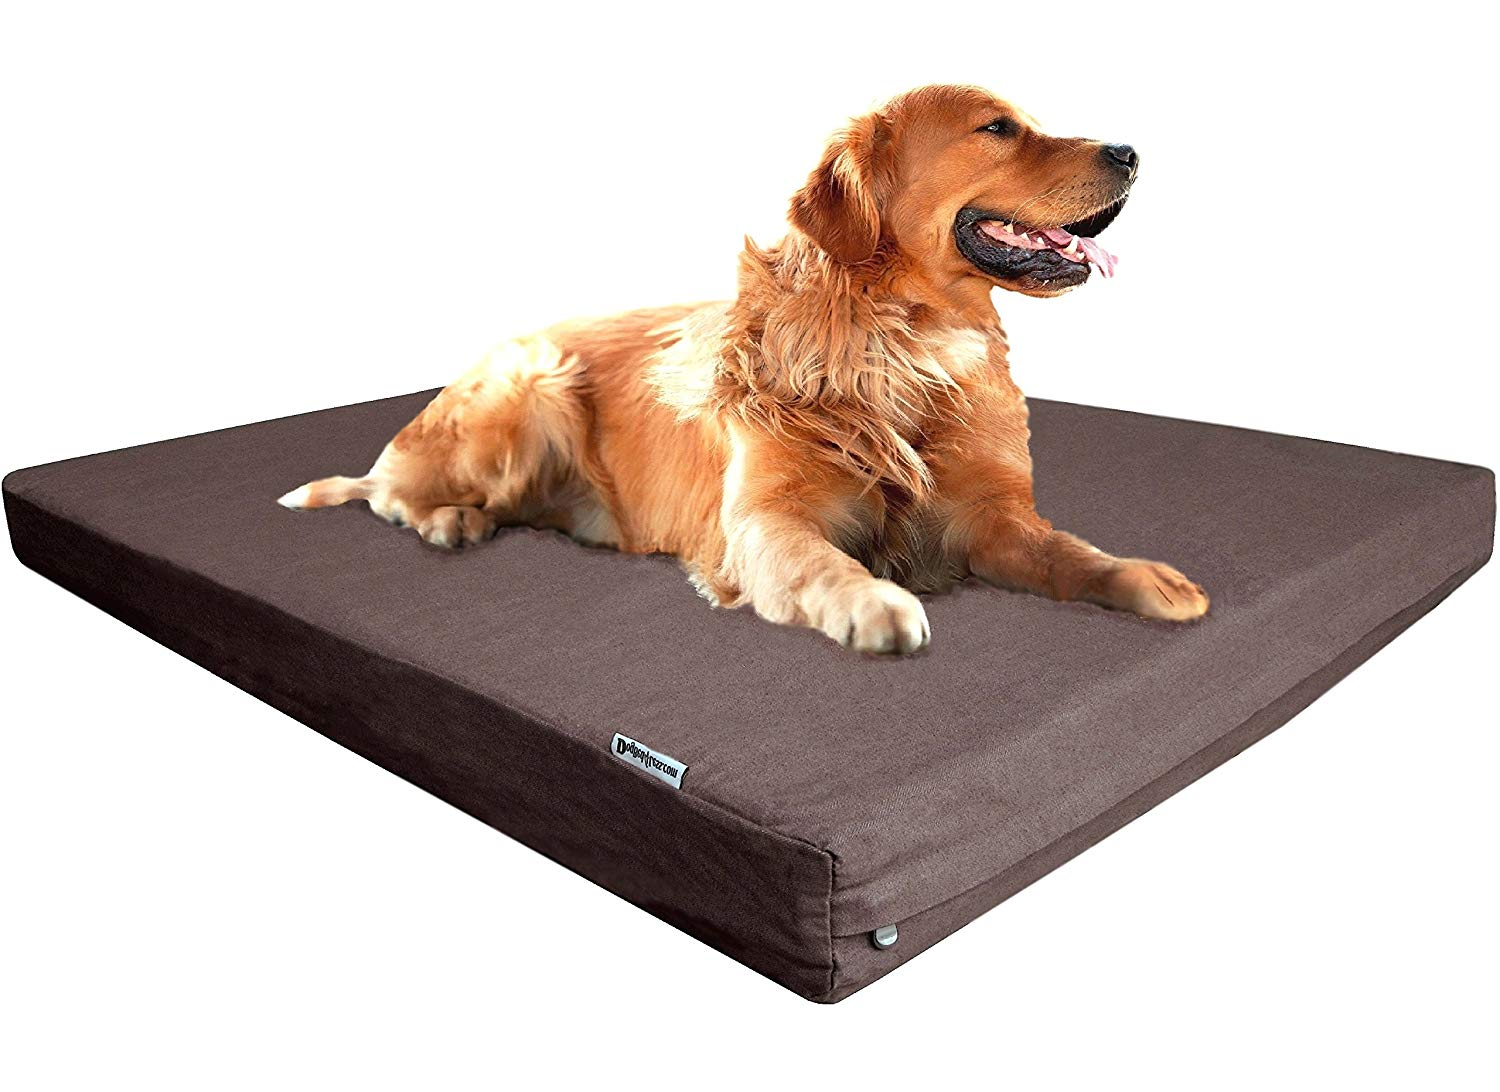 dogbed4less Orthopedic Cooling Memory Foam Dog Bed review by www.puppyurl.com